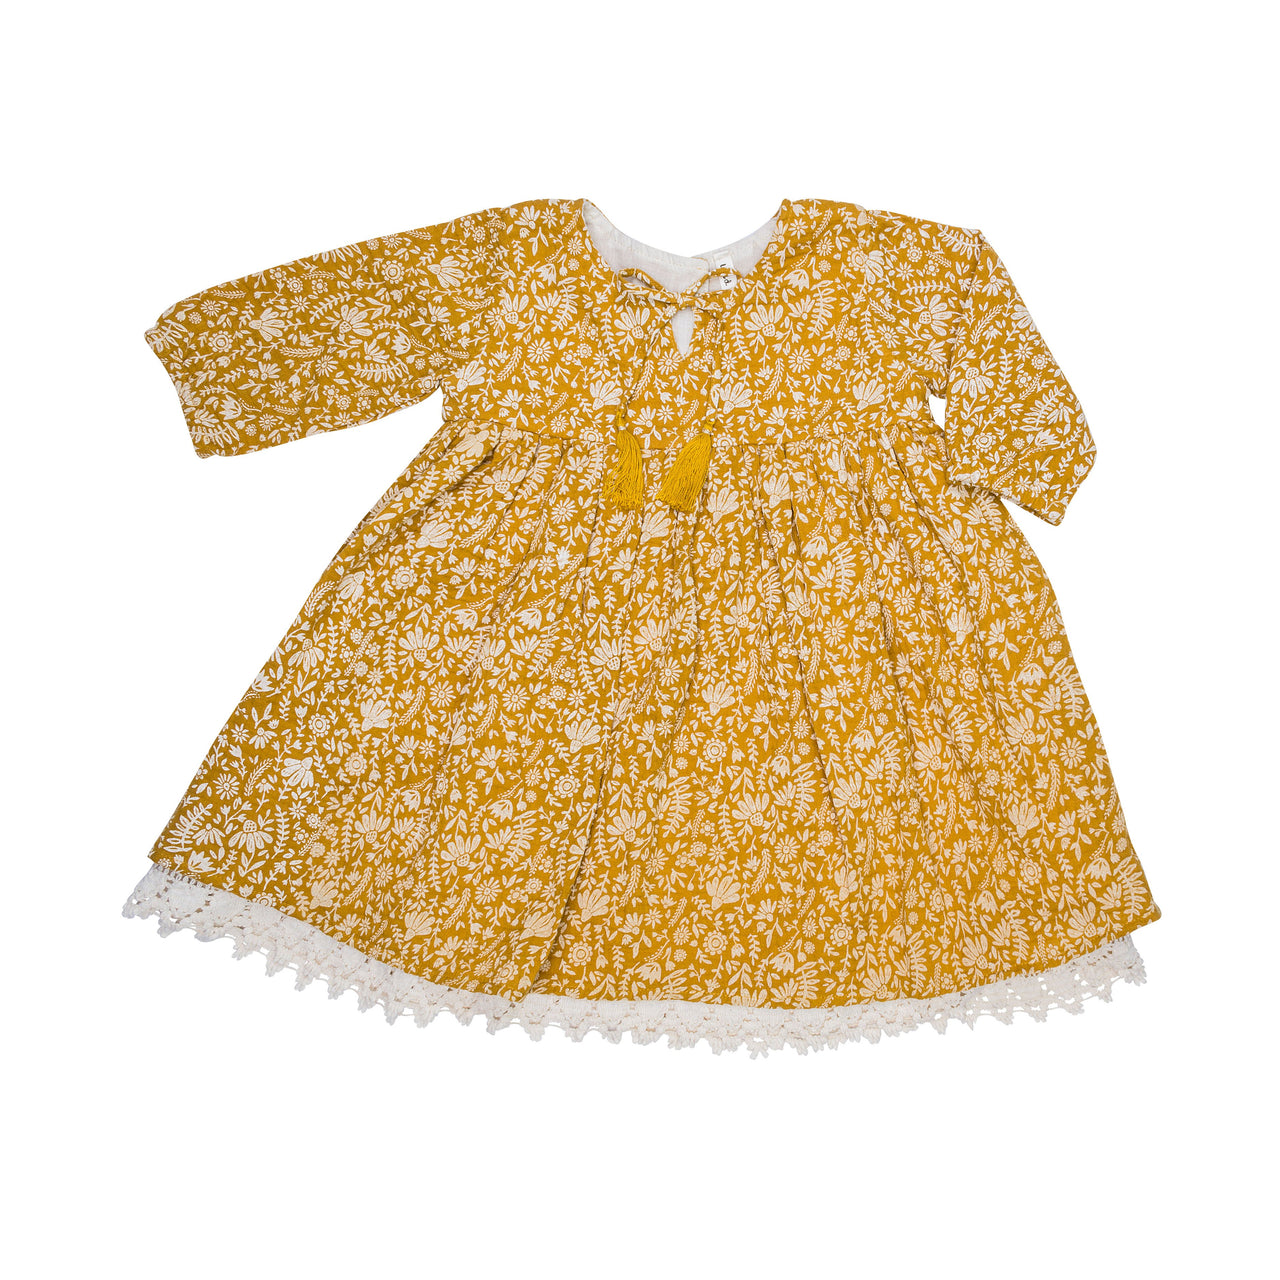 Goldenrod Lailah Dress